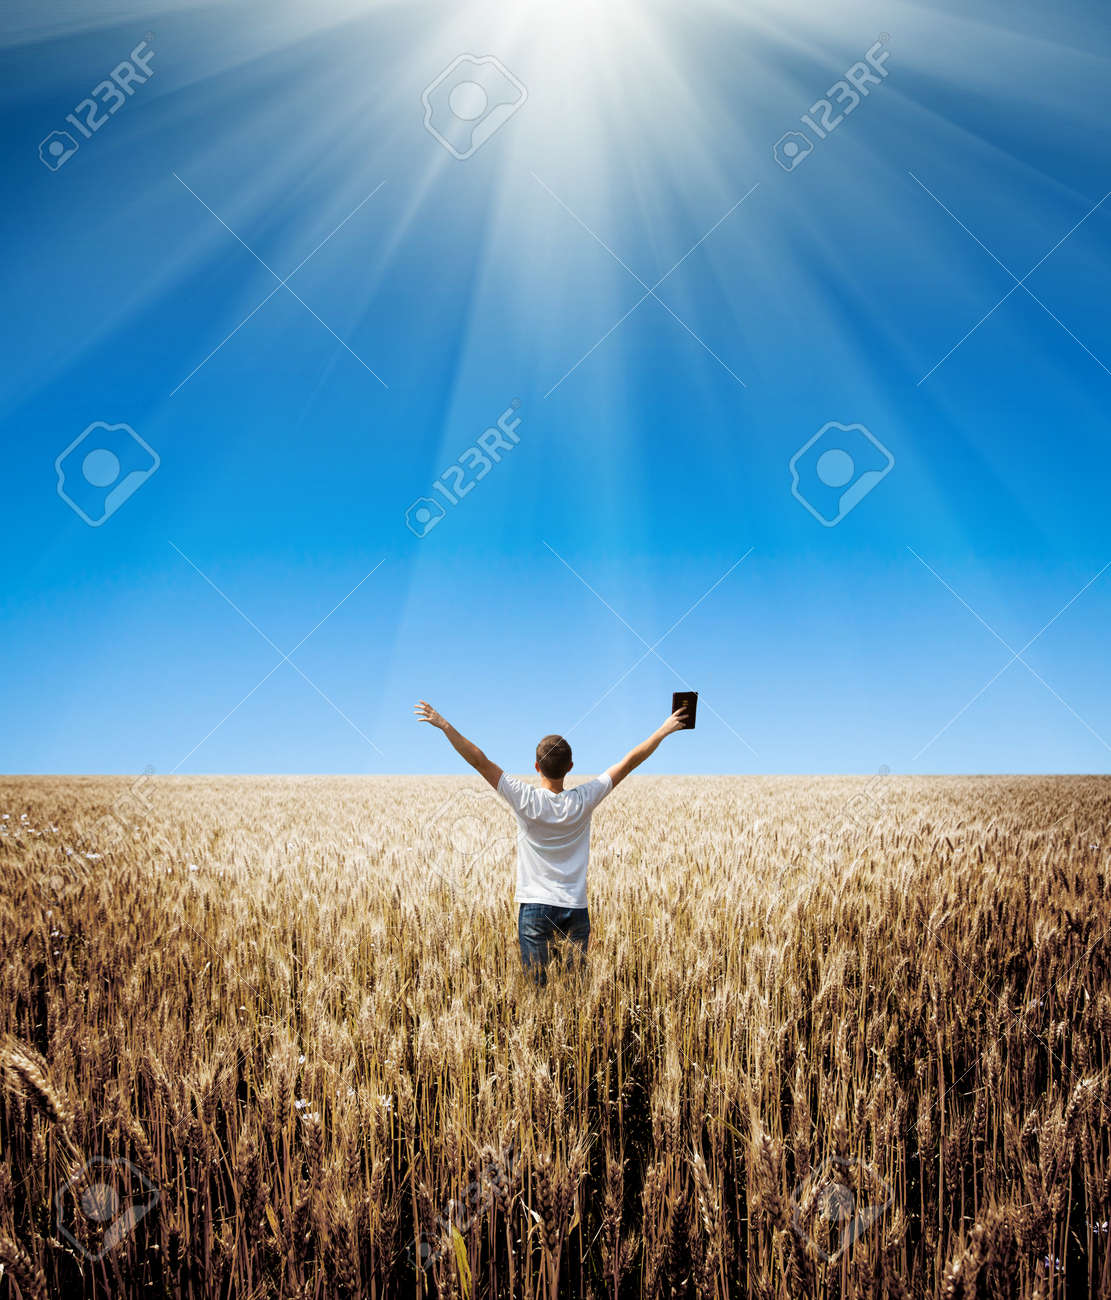 man holding up Bible in a wheat field - 41413327